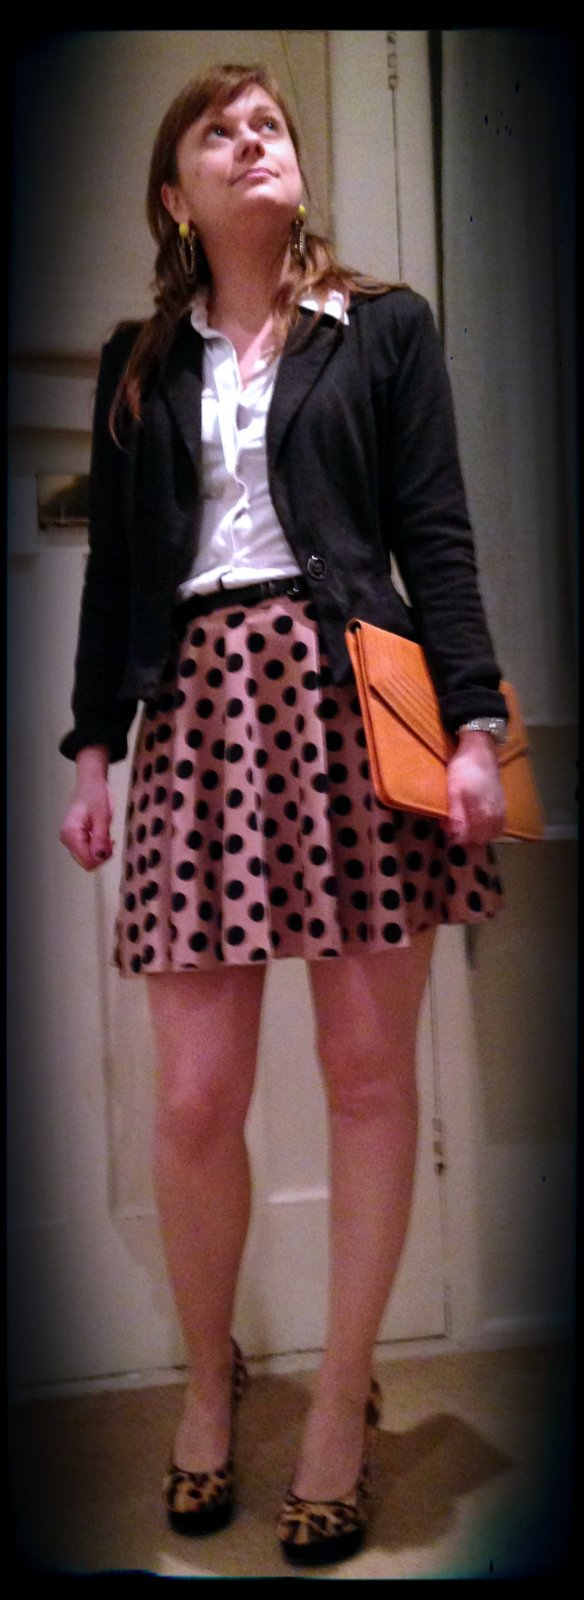 Skirt: Rare at ASOS Blazer: Jane Norman Blouse: Mango Bag: Vintage Shoes: Jessica Simpson for Kurt Geiger